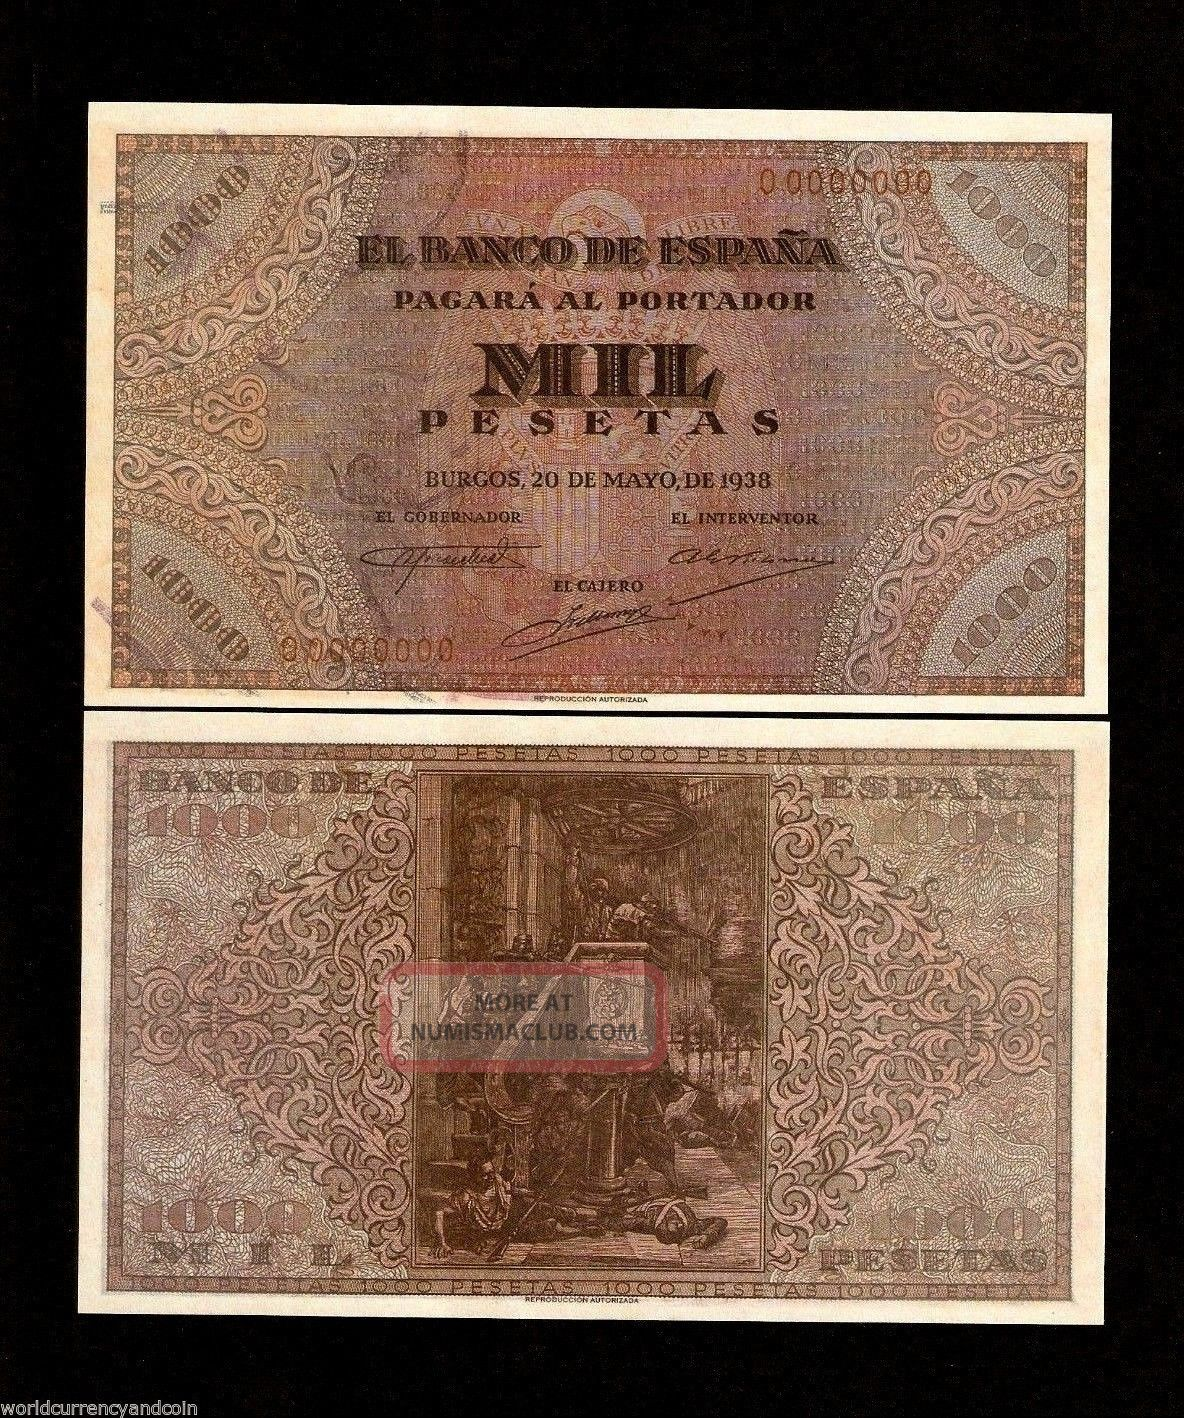 Spain 1000 Pesetas 1938 El Banco De Espana Specimen Replica Currency Money Bill Europe photo